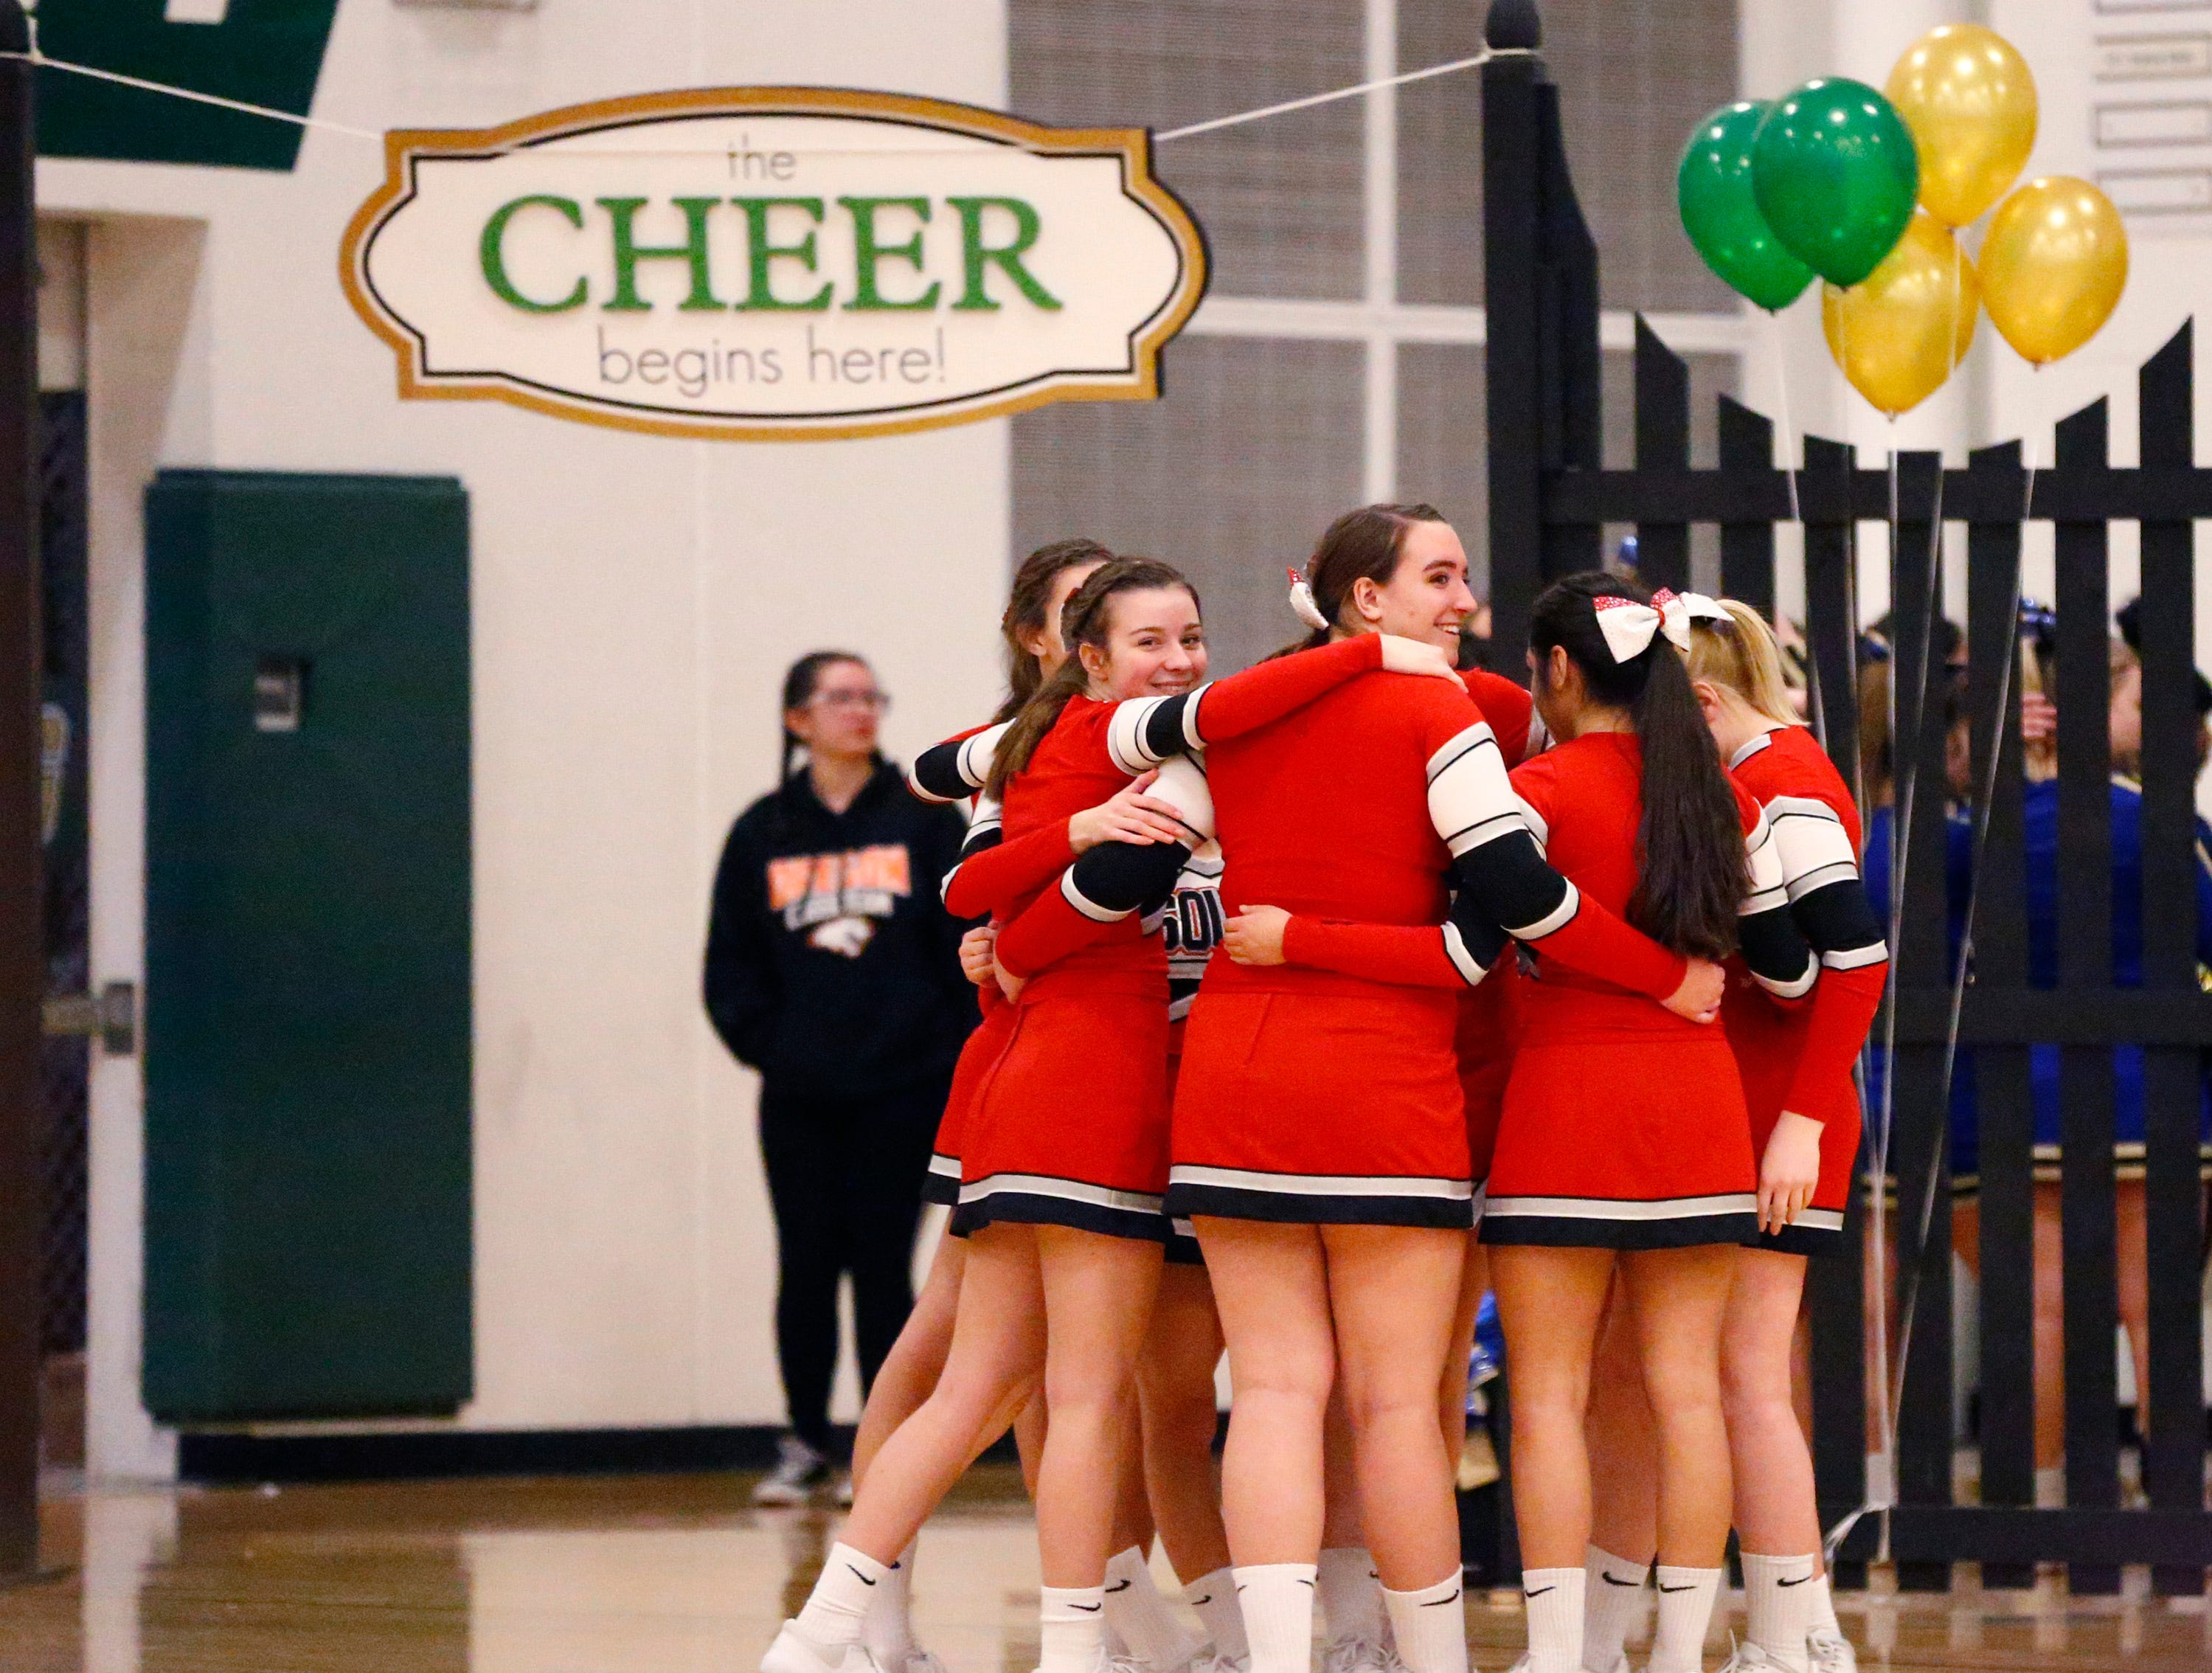 The Waukesha South team readies to take the floor to compete in the varsity division in the Greenfield Xtreme Cheer competition at Greenfield High School on Jan. 12 that drew 56 teams competing in 13 divisions.